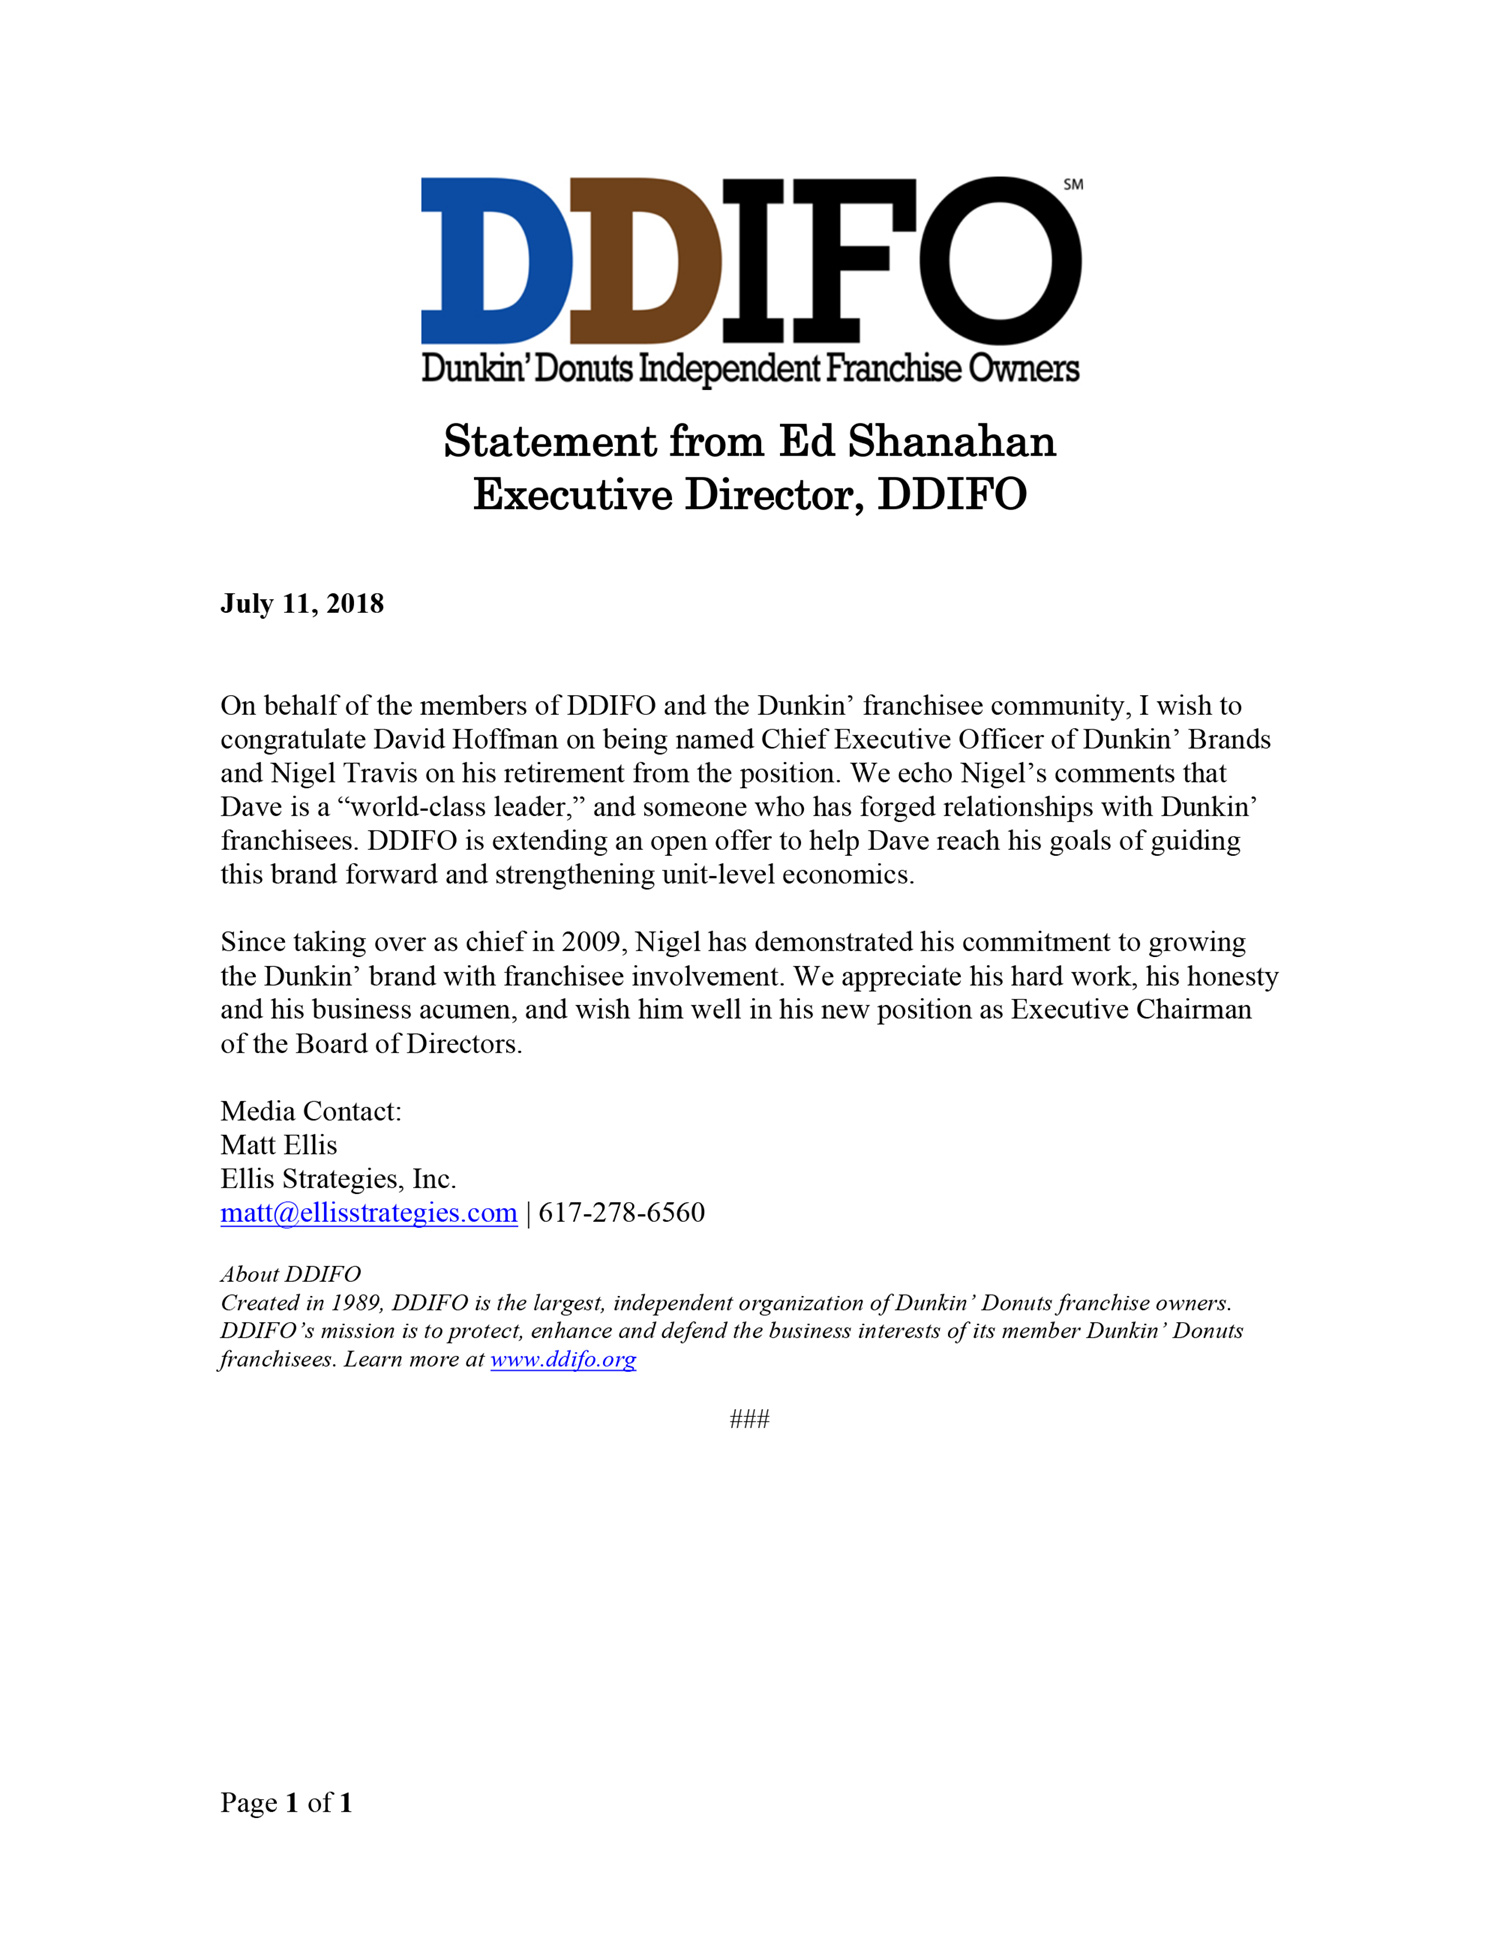 DDIFO-Statement-Dunkin-Brands-Names-Hoffman-CEO-v2